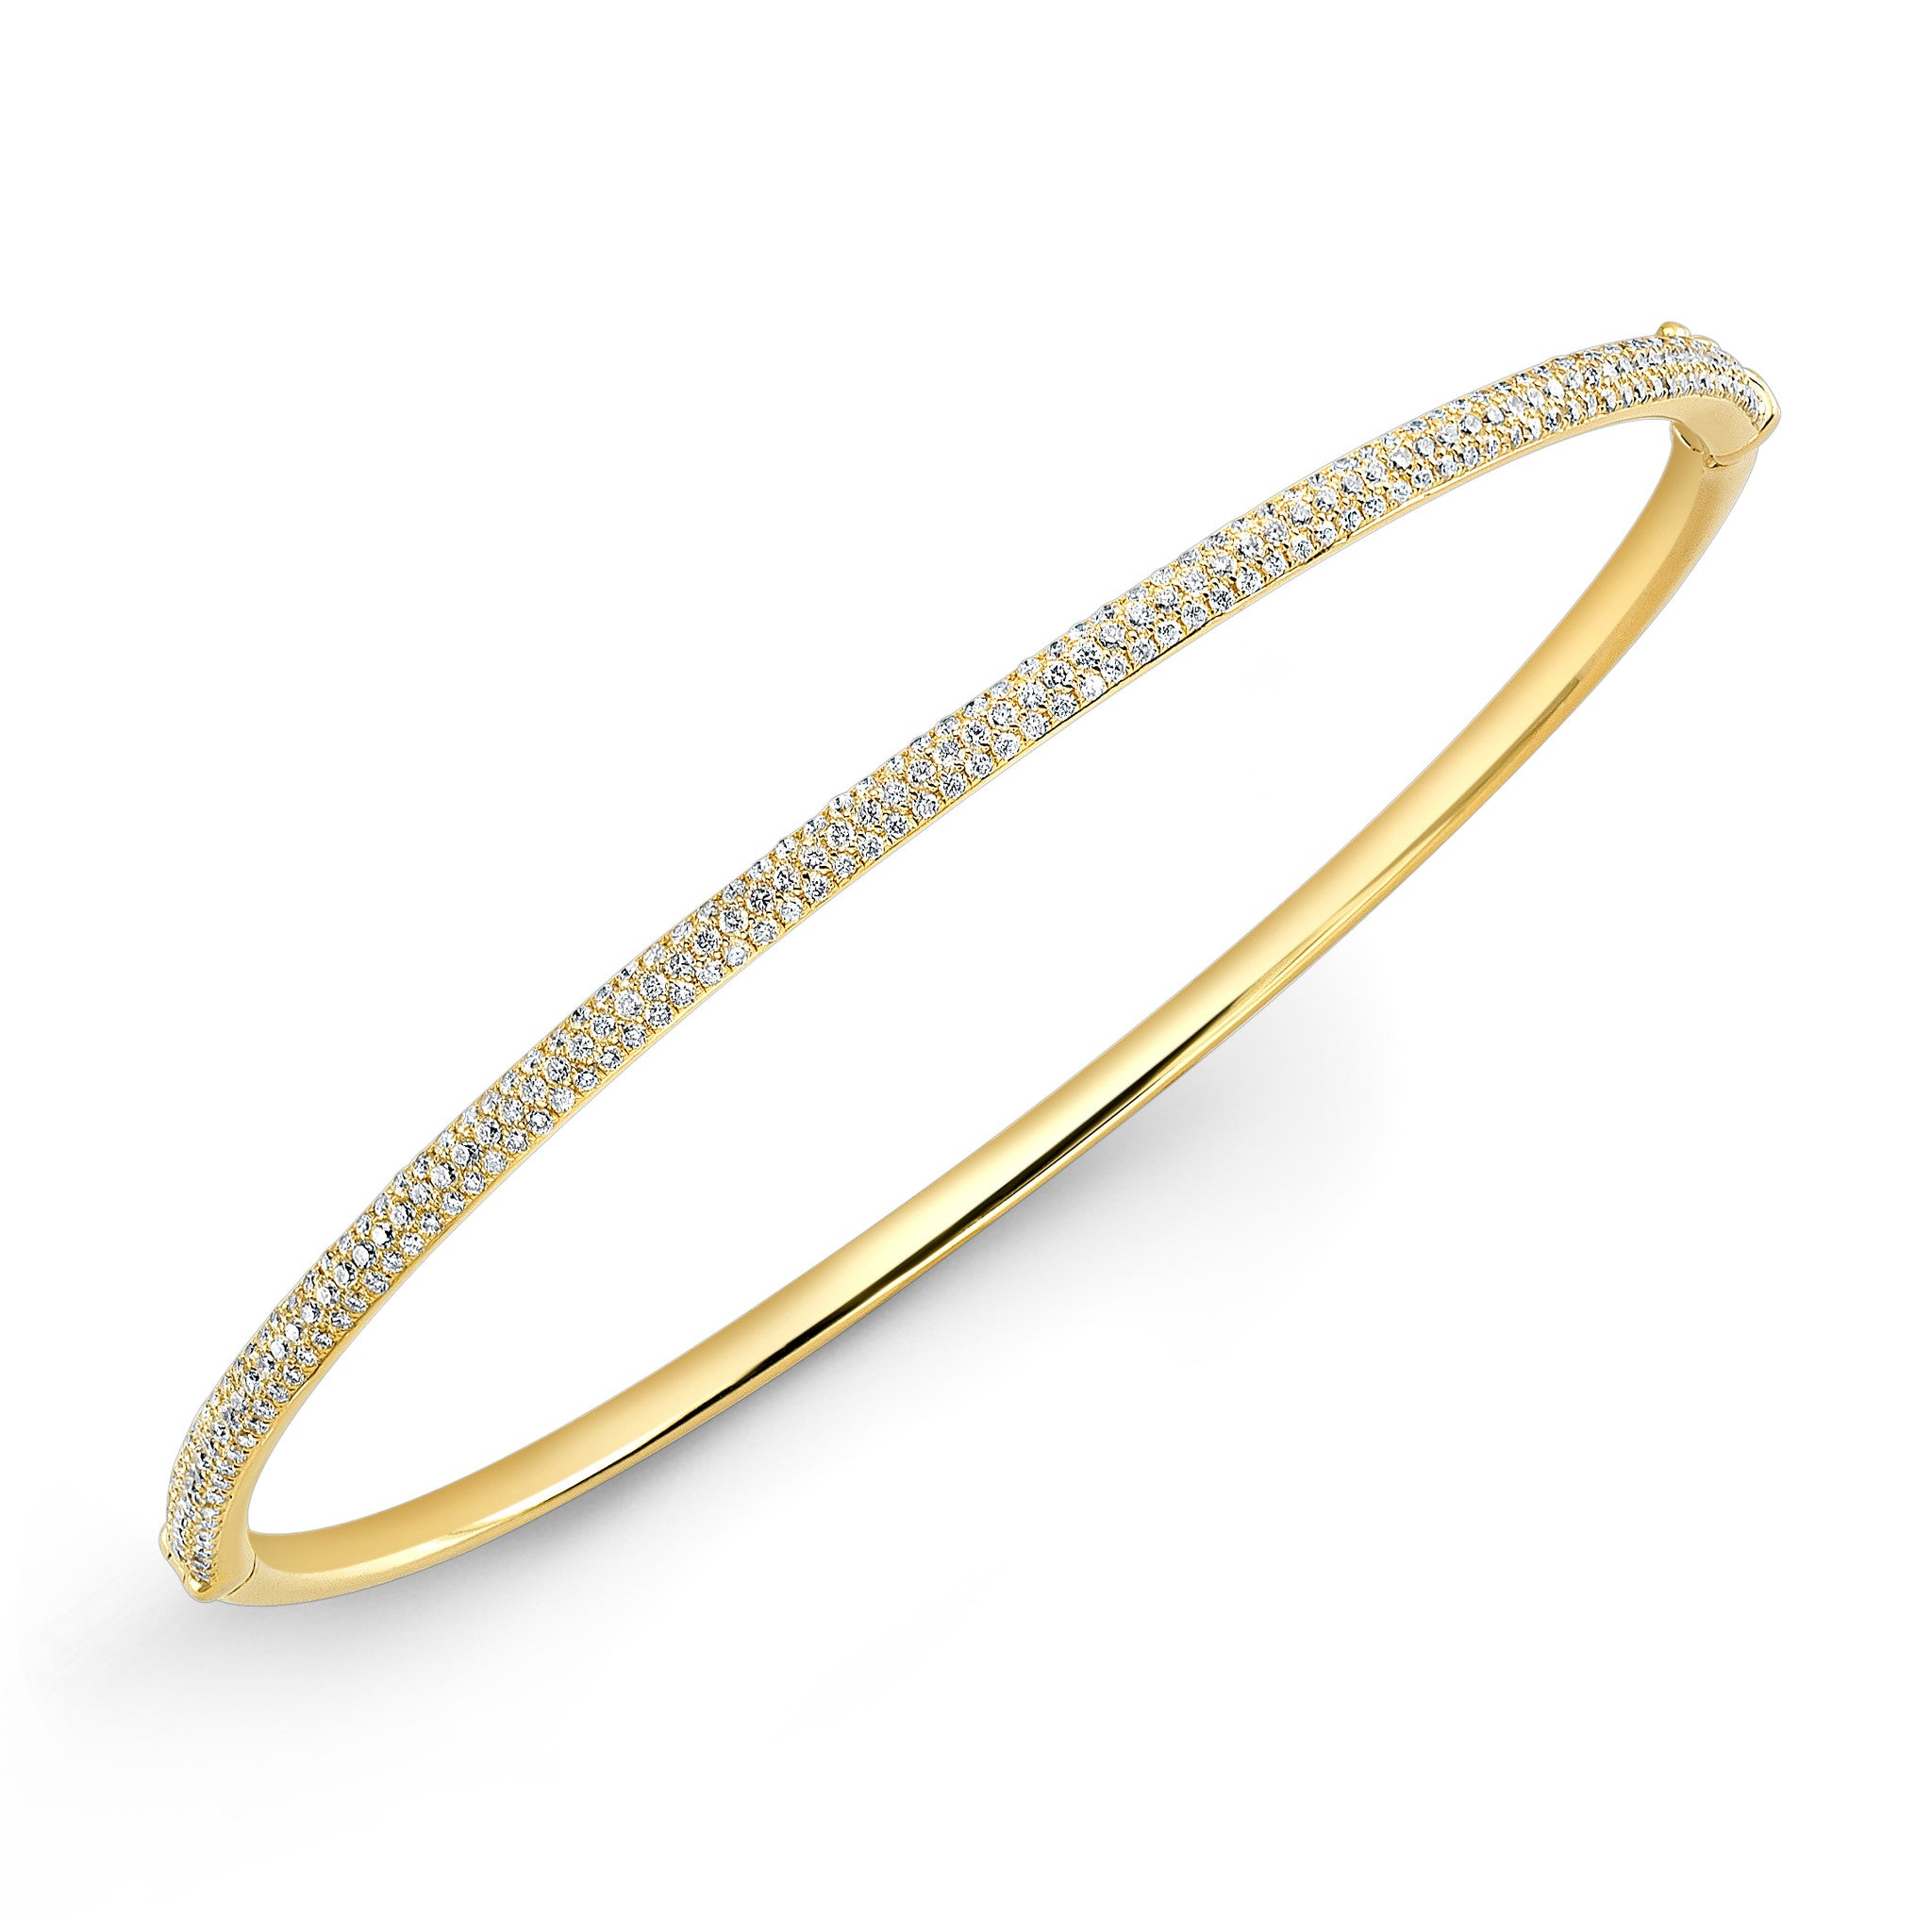 bracelet bangle bangles diamond jewelers kravit rd way w shop white gold pave